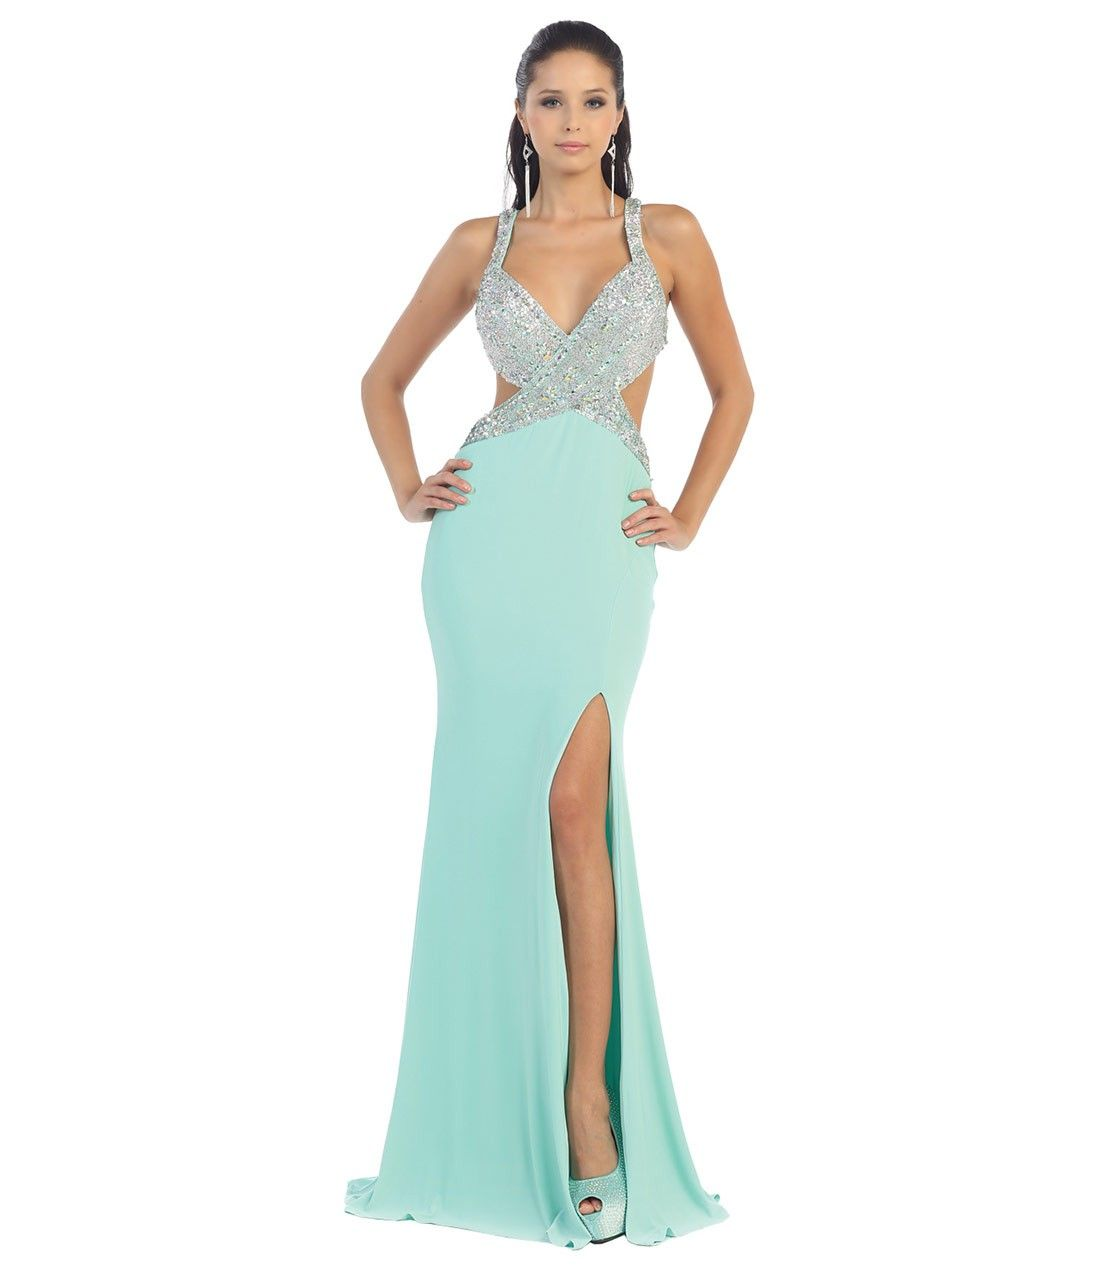 Sexy Seafoam Green #Prom Gown | A Hint of Mint | Pinterest | Green ...